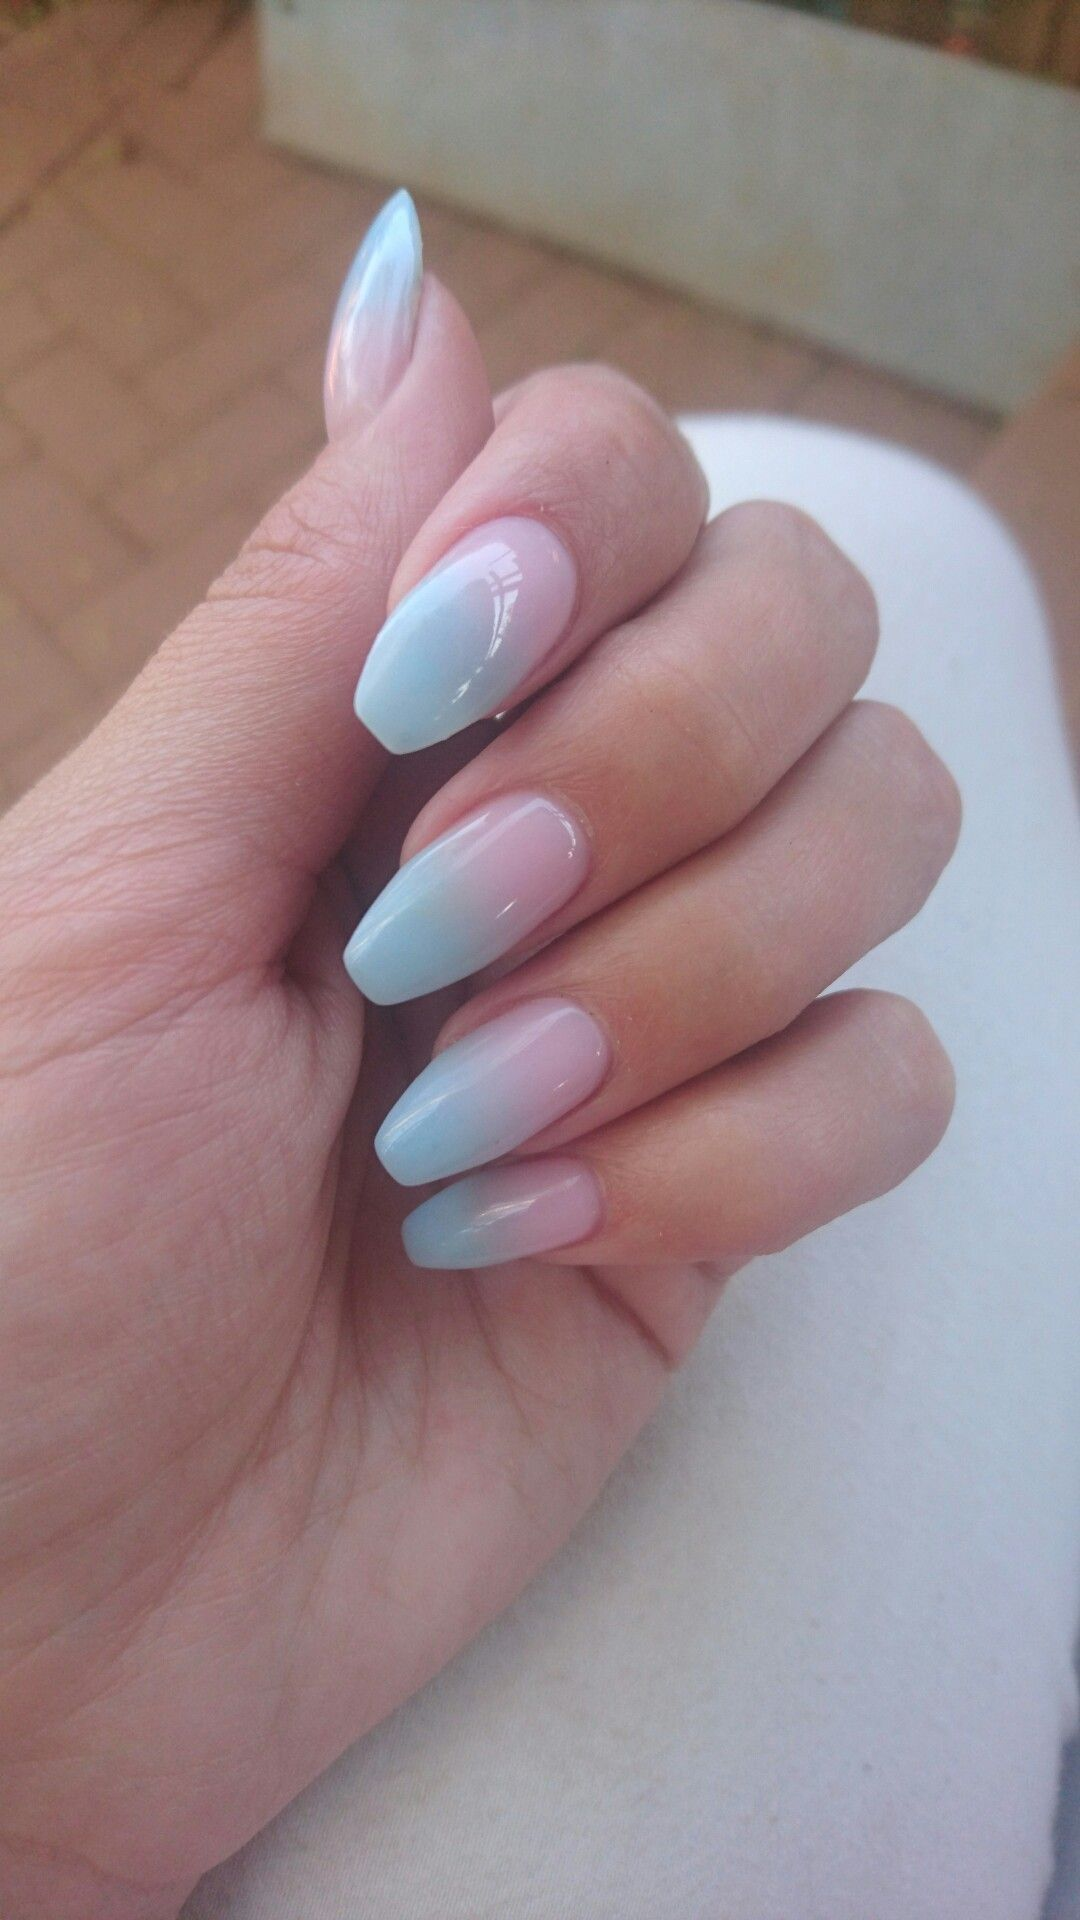 Pin By Yazmine Torres On Nails Pink Ombre Nails Blue Ombre Nails Coffin Shape Nails